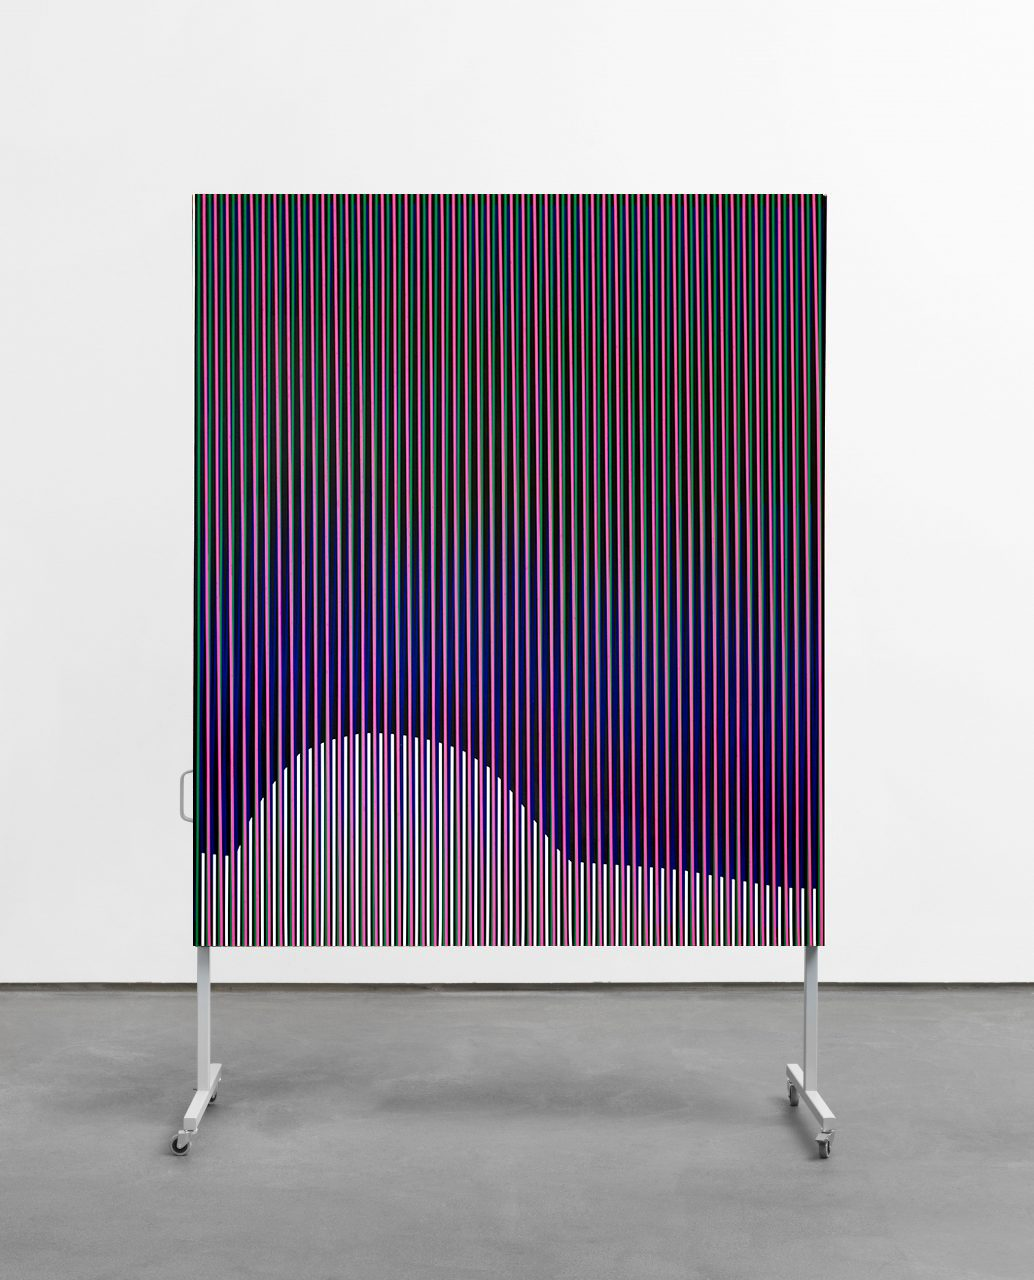 untitled (body color space), 2018 /// acrylic on canvas on metal display /// 245 x 155 x 60 cm